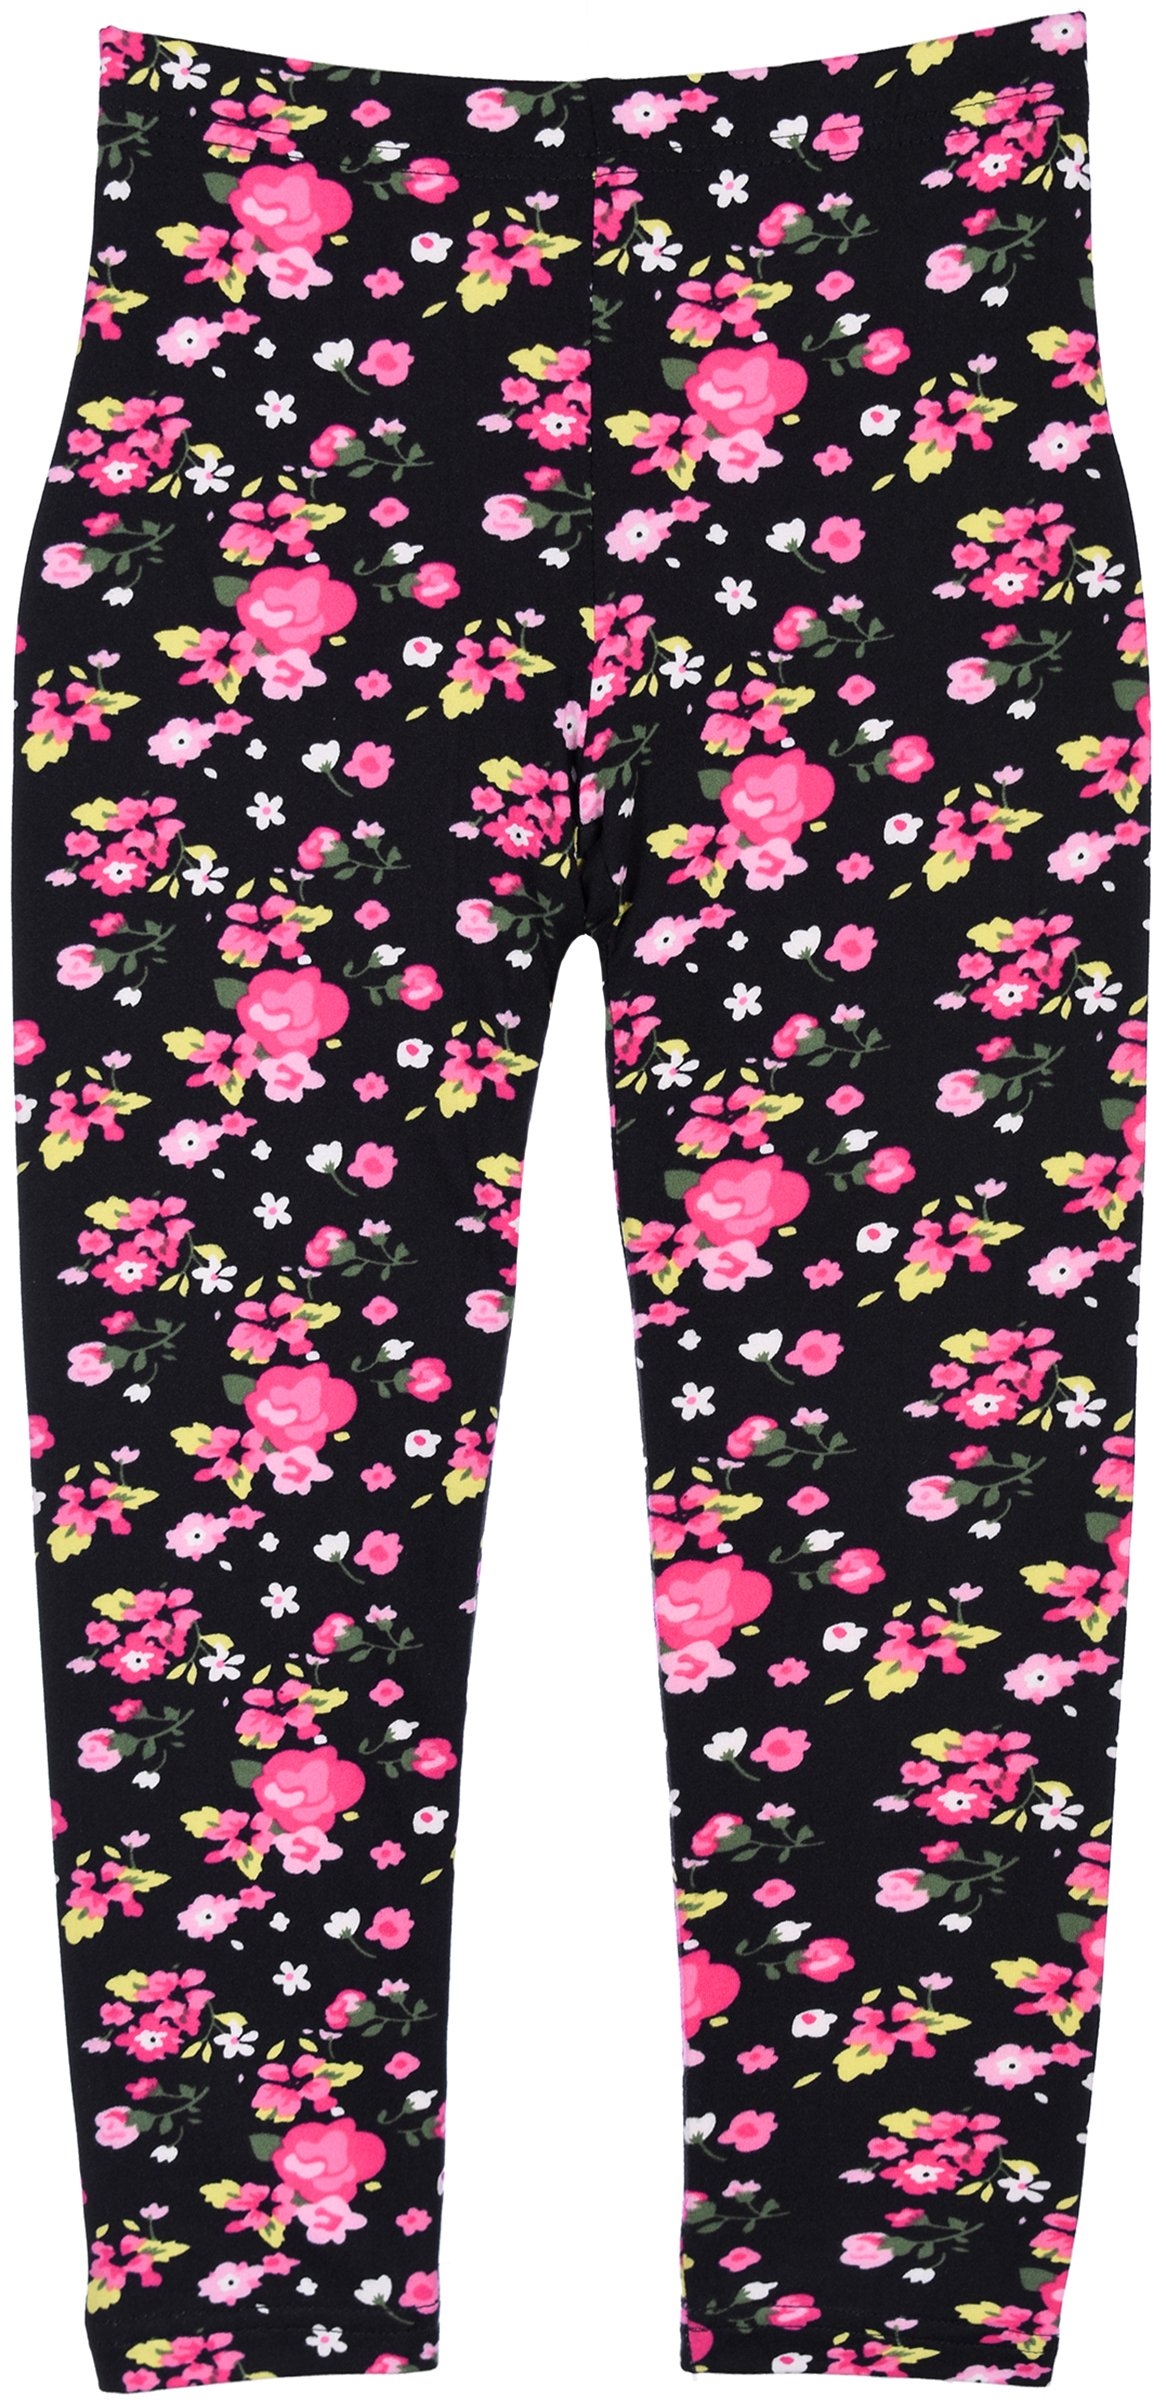 Crush Young Girls Teen Print Leggings in 8 Fun Colorful Patterns in 6 Sizes (4, 24102 Black)